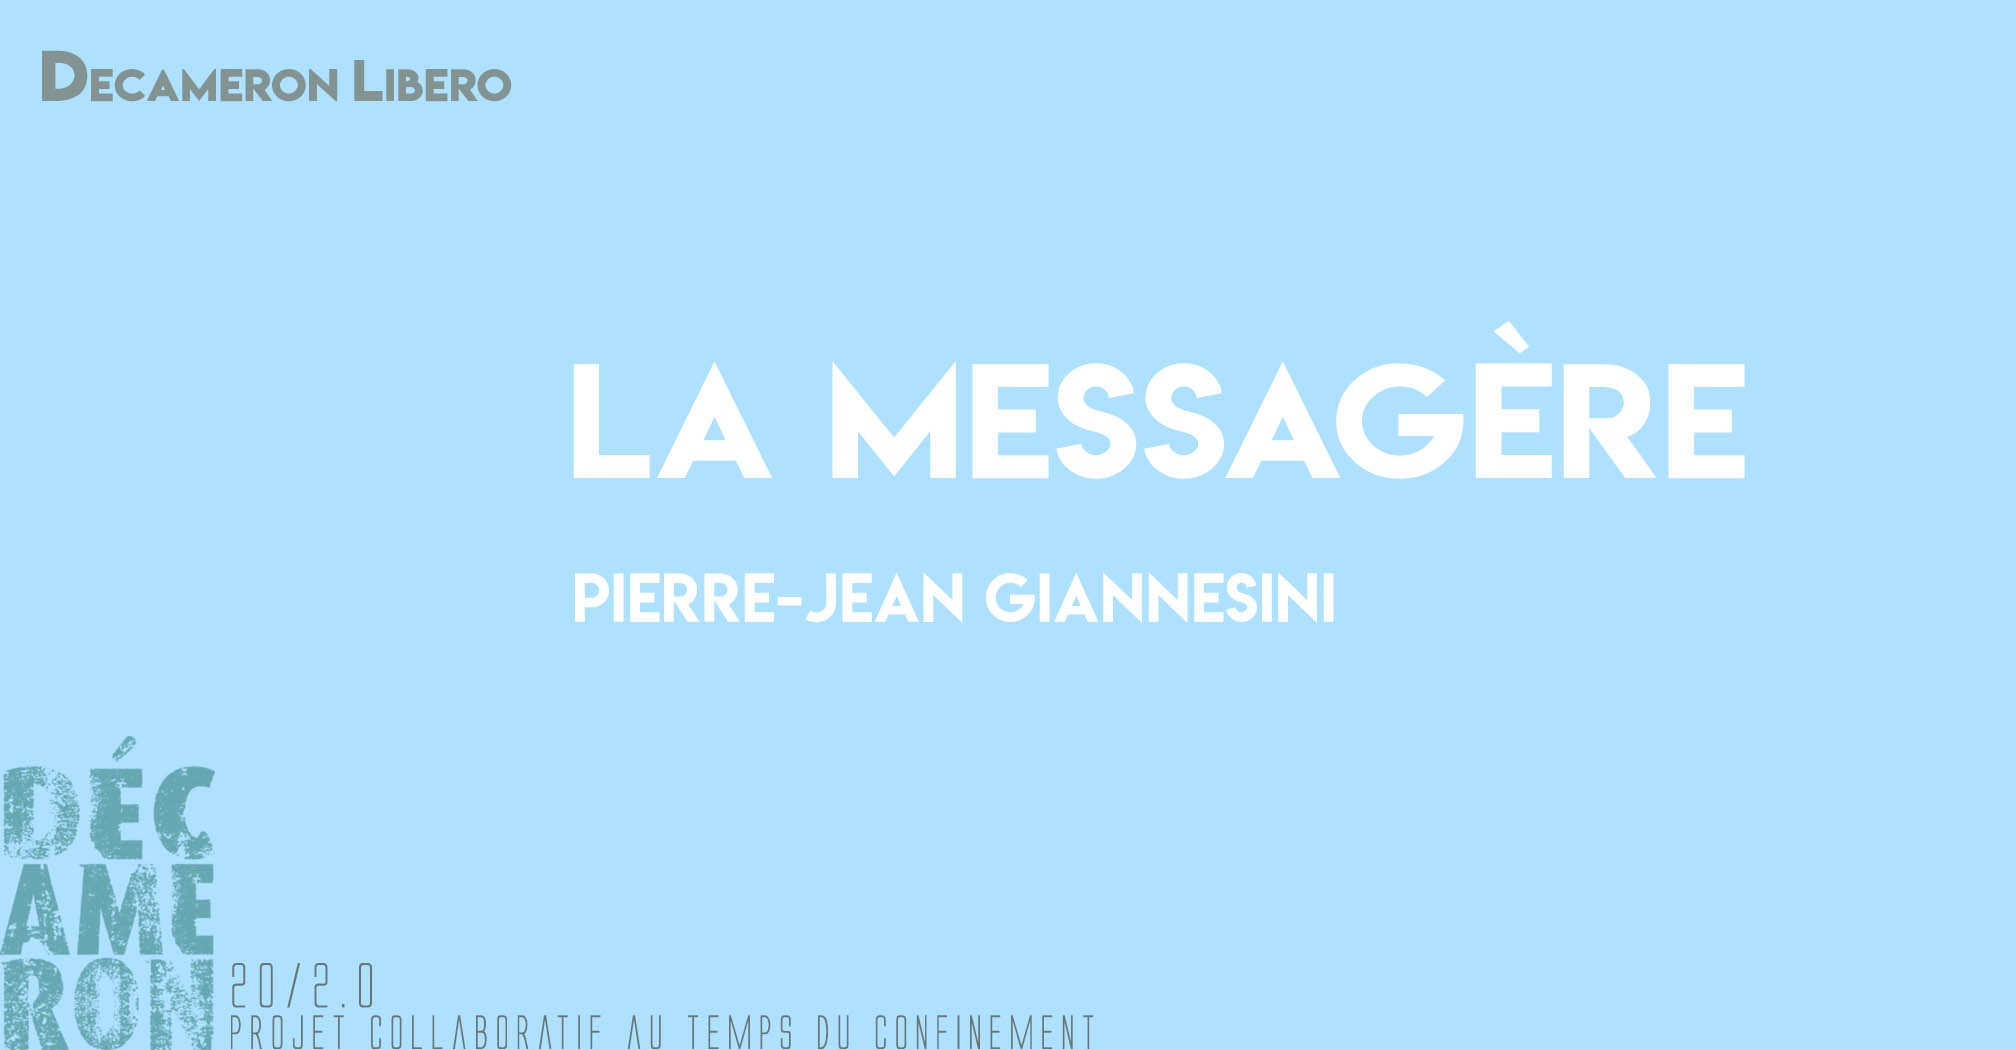 La messagère - Pierre-Jean Giannesini